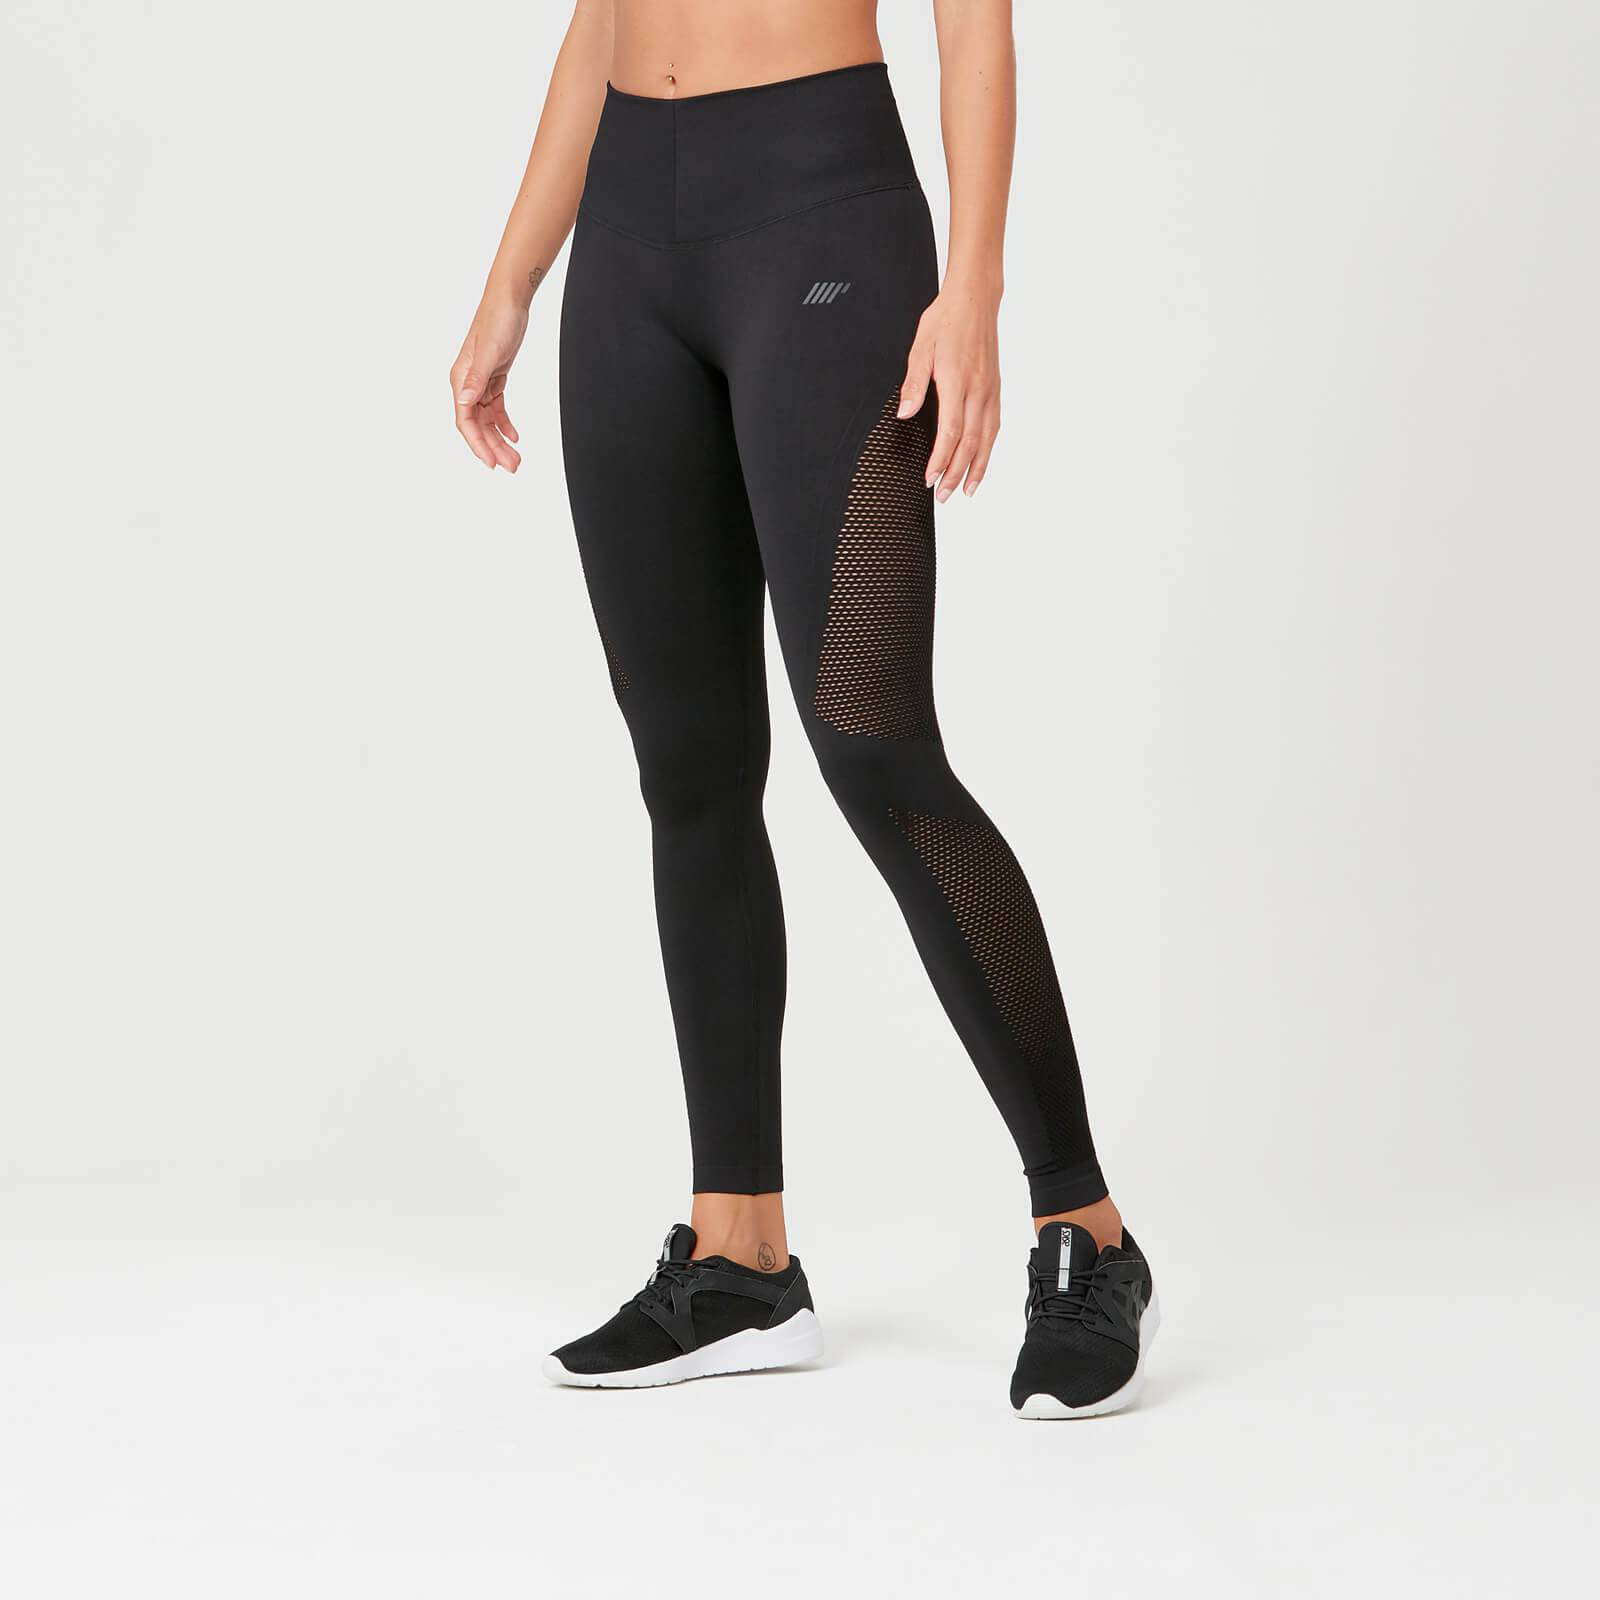 Myprotein Leggings Shape Seamless - L